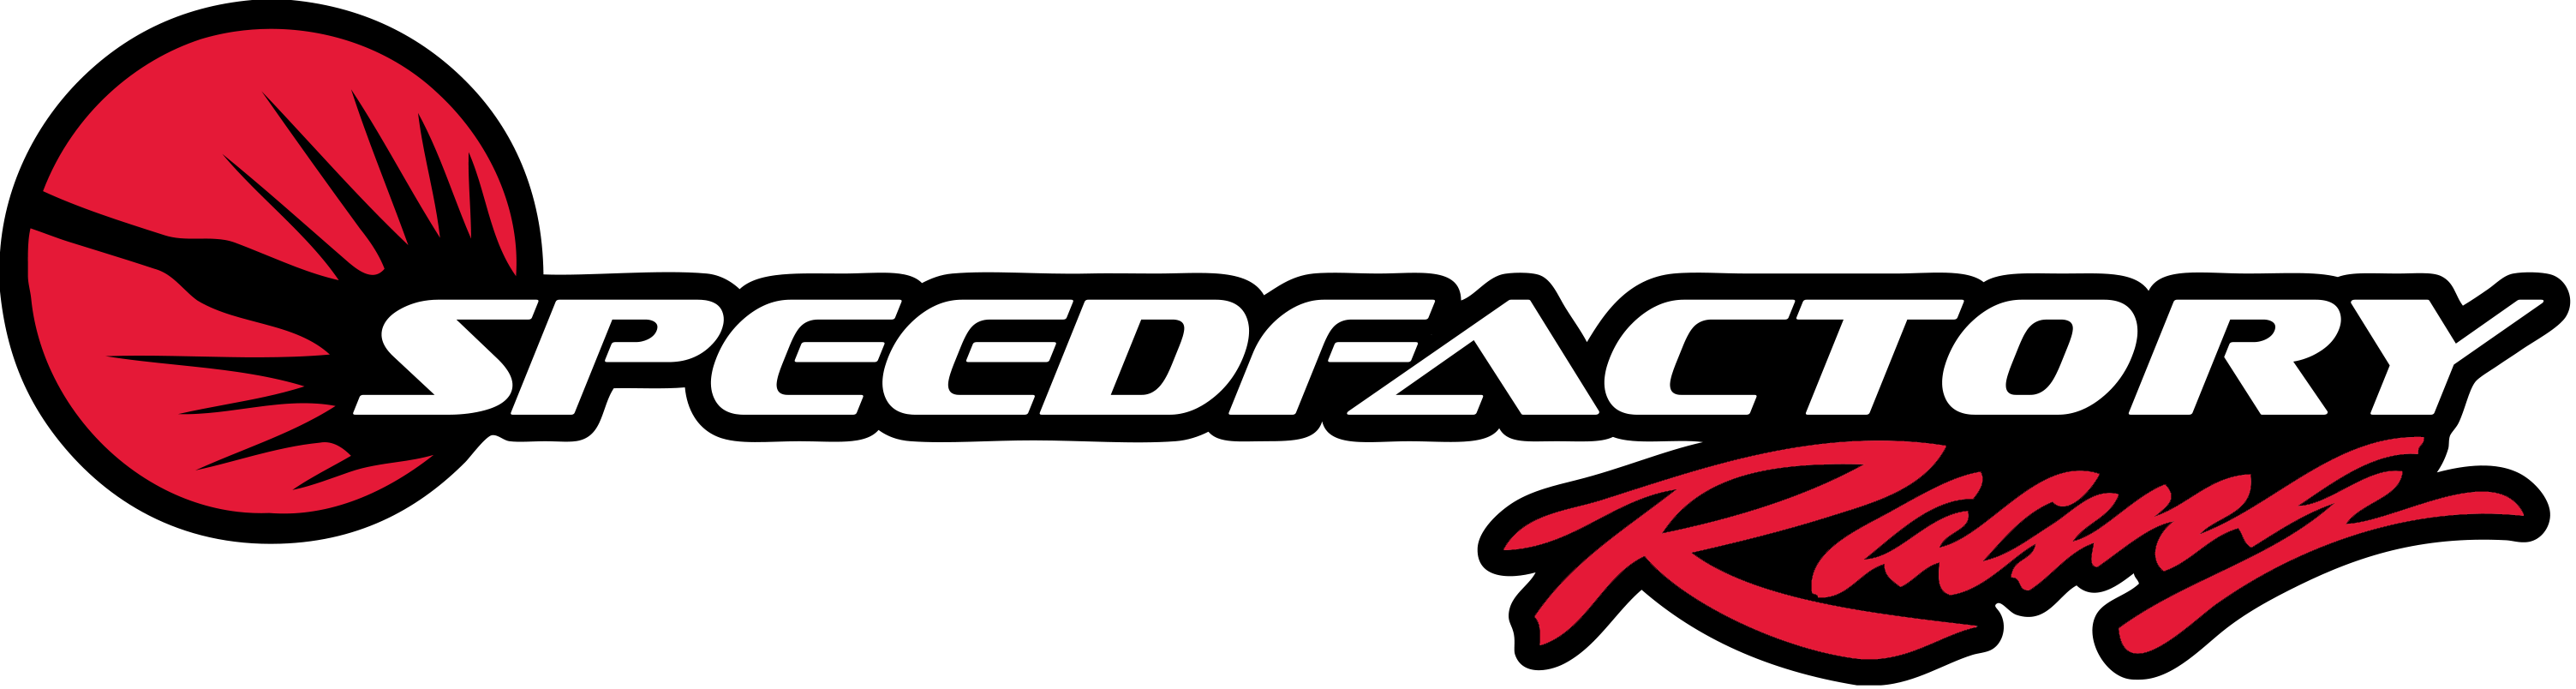 SpeedFactory Racing Logo